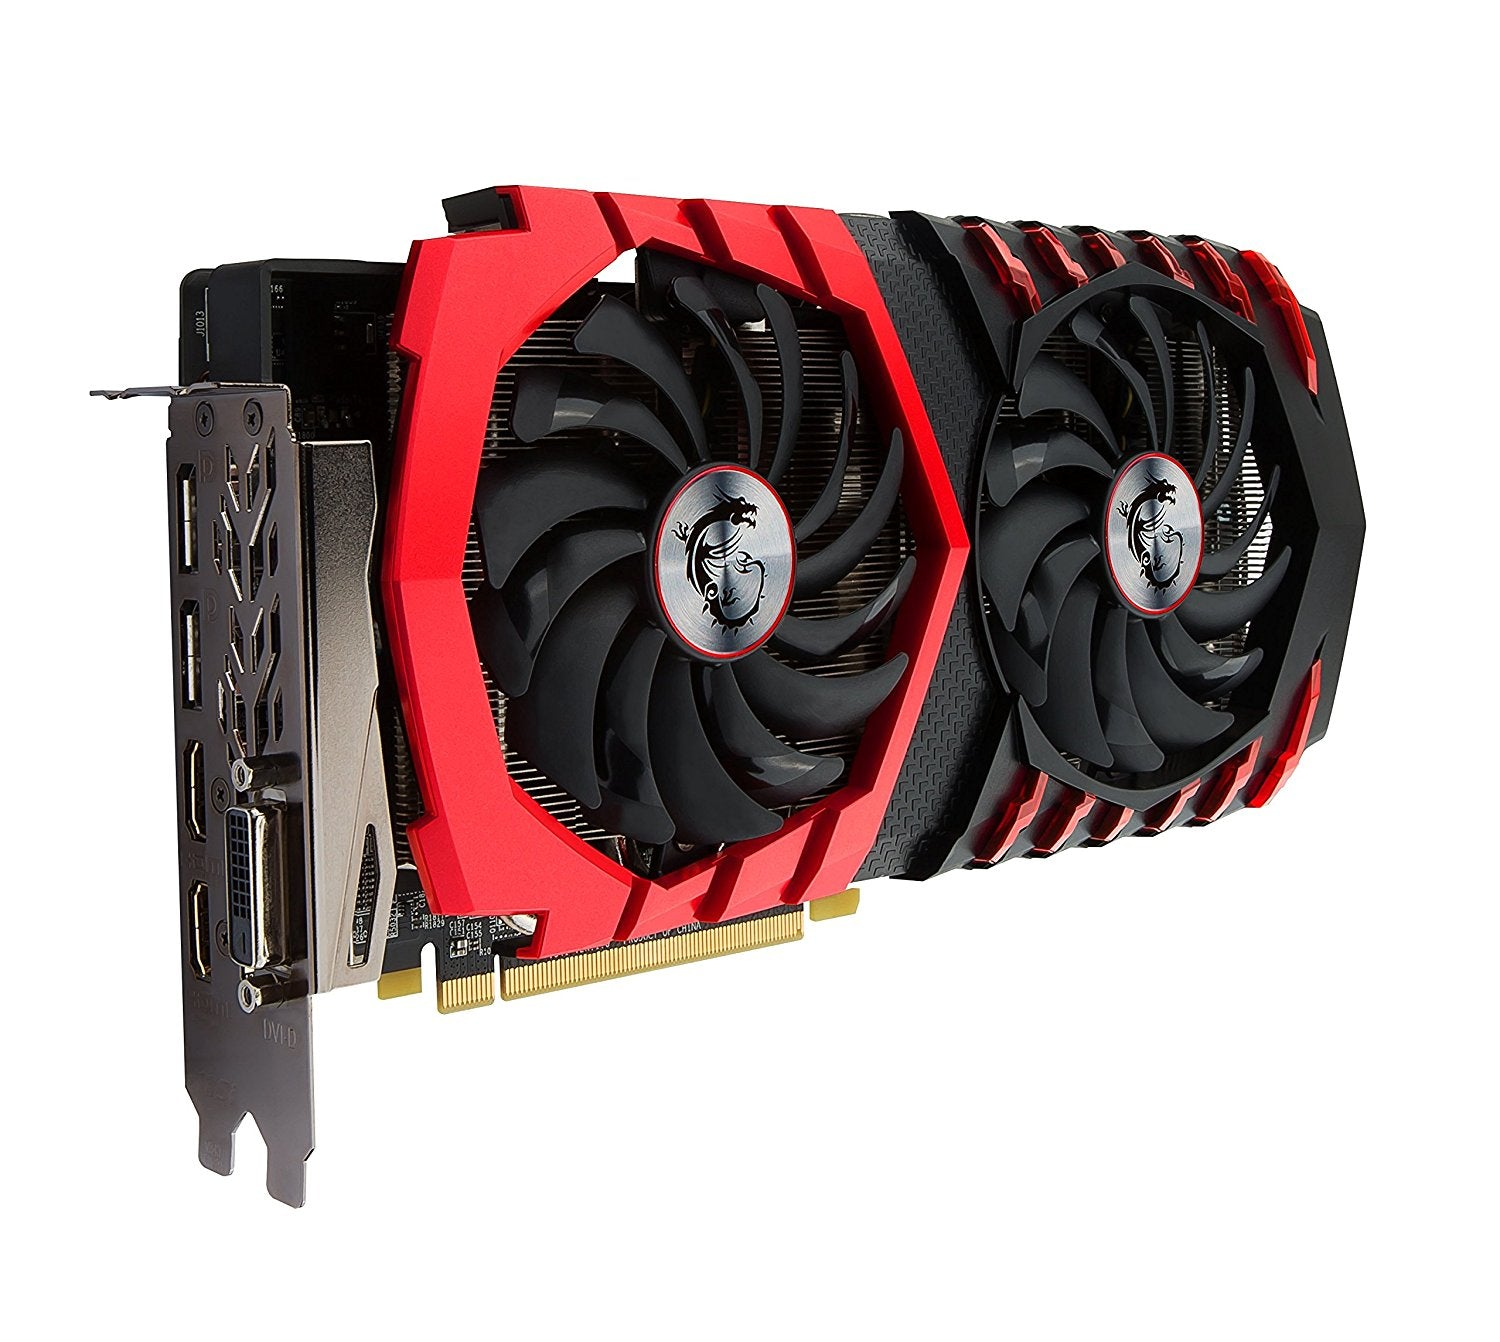 MSI RX 580 Gaming X 8G Radeon GDDR5 8GB Crossfire VR Ready DirectX 12 Graphics Card